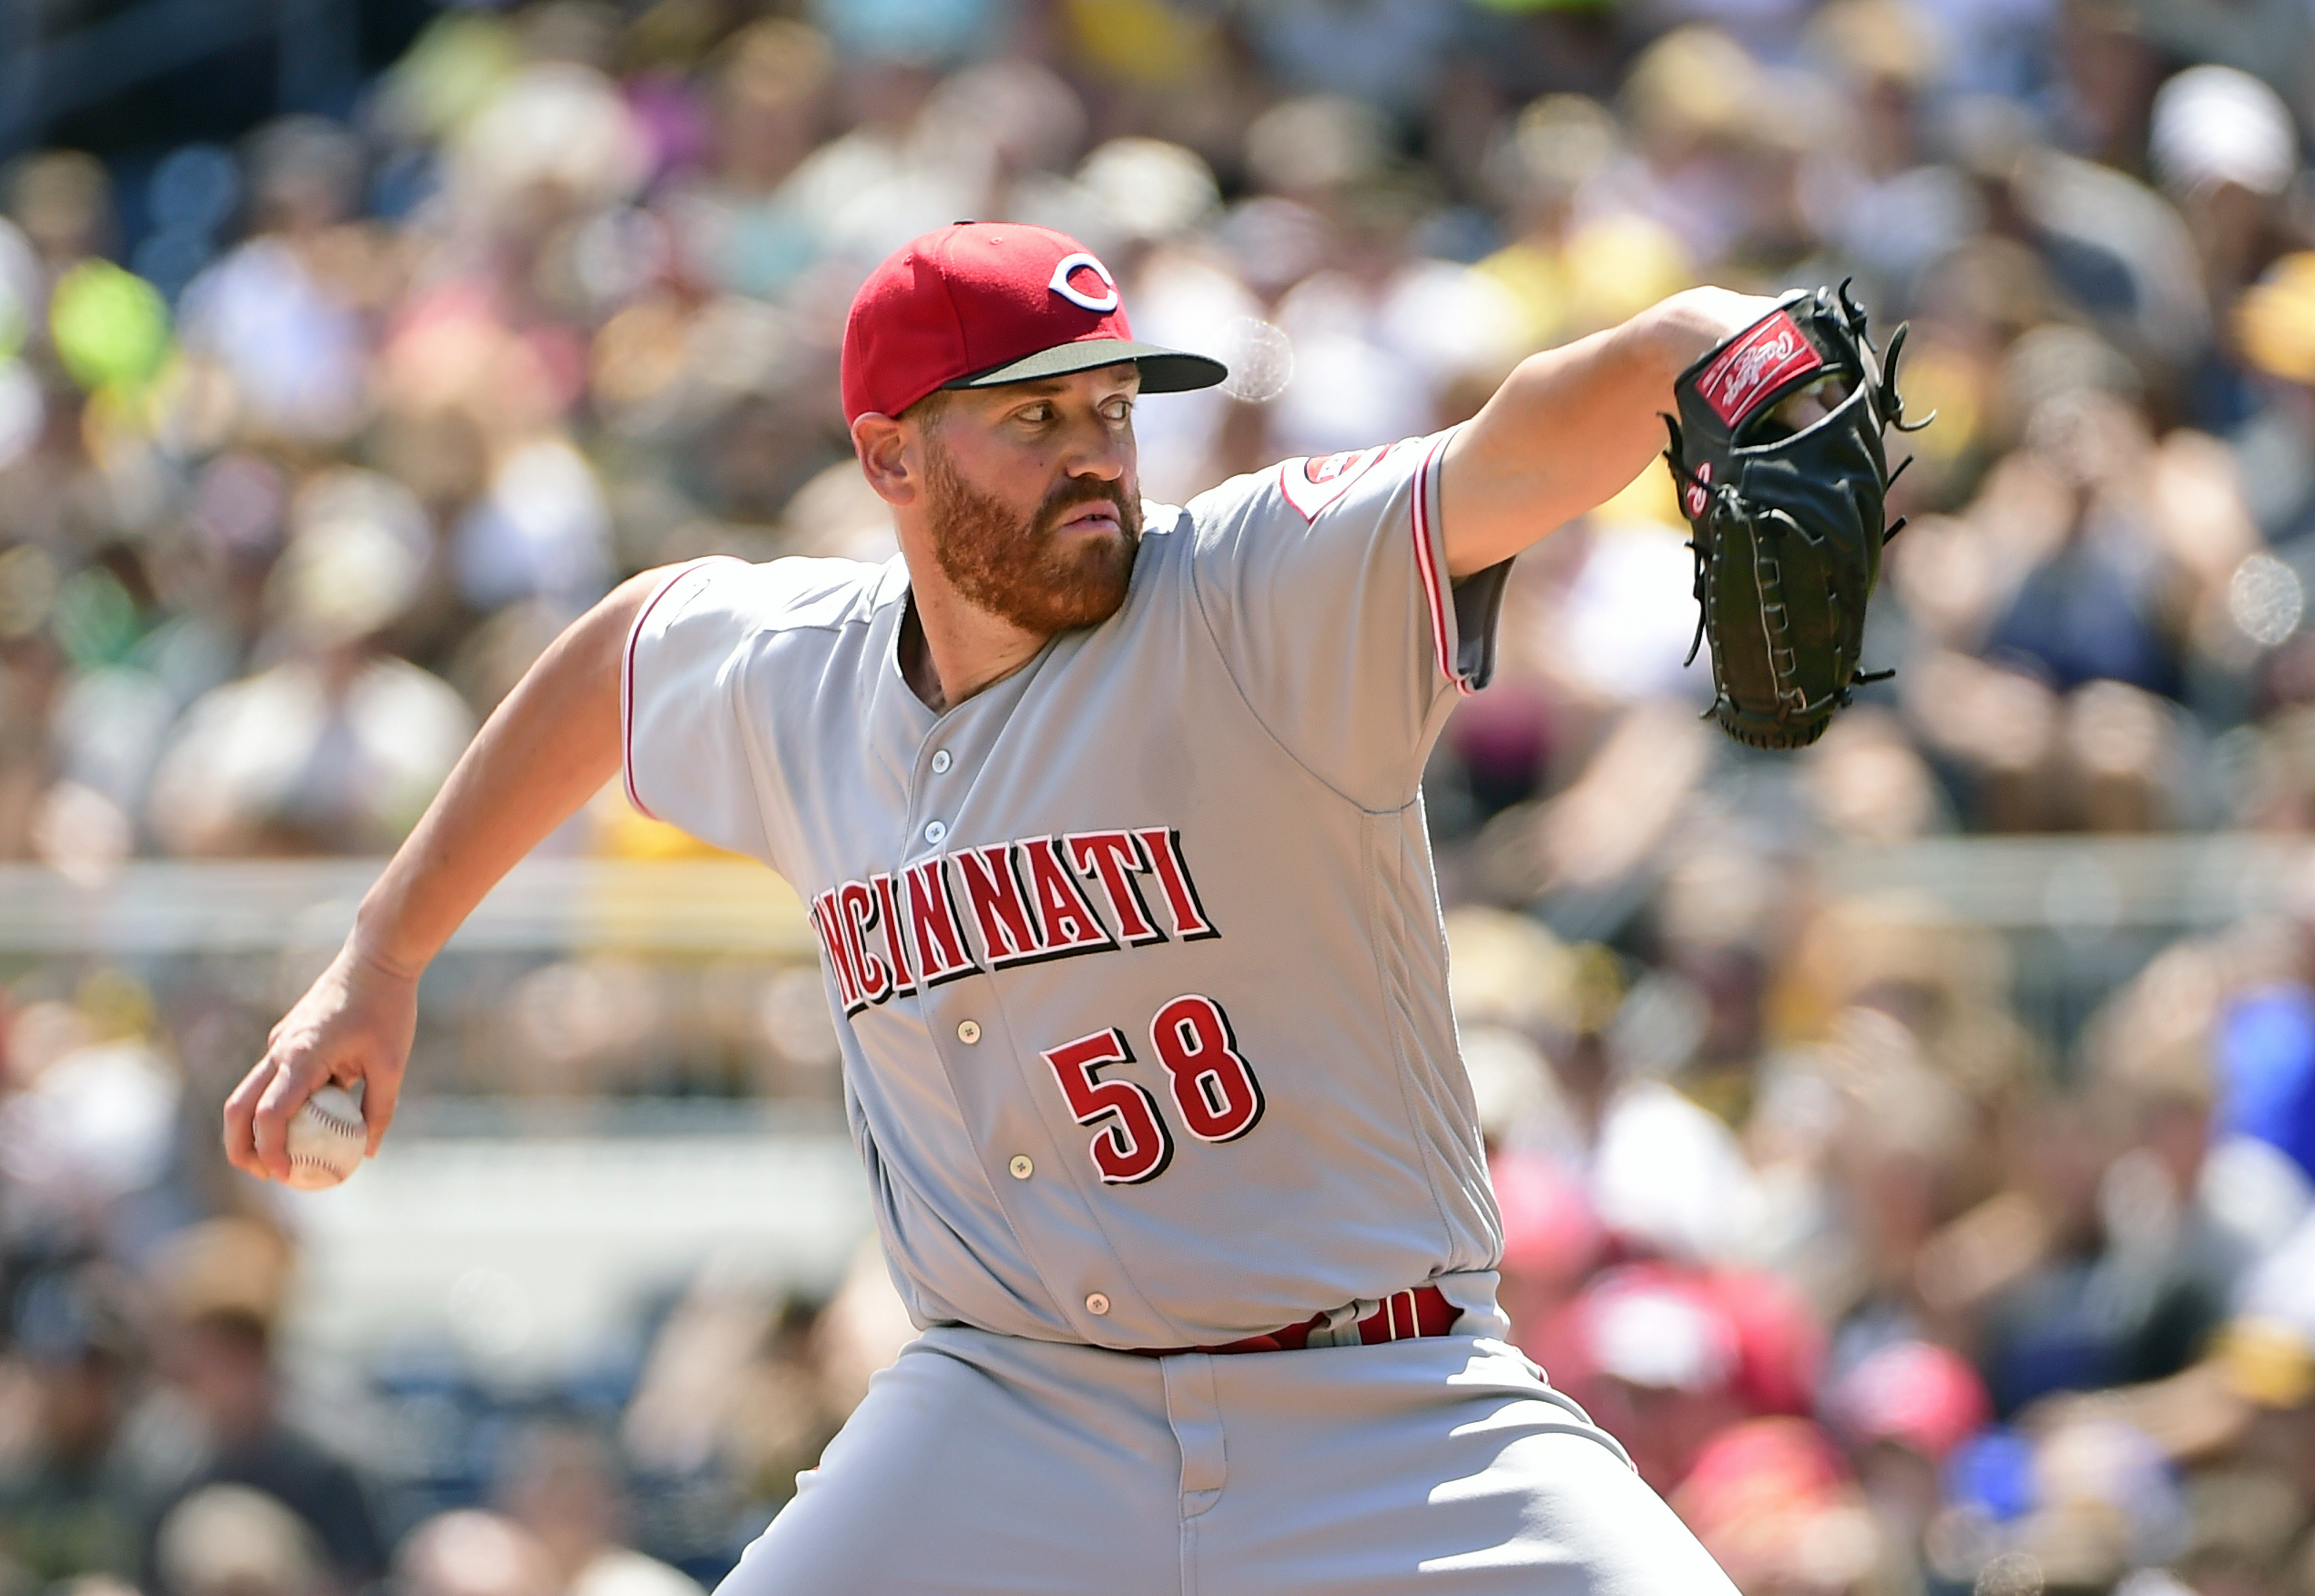 Cincinnati Reds starting pitcher Dan Straily (58) throws in the first inning of a baseball game against the Pittsburgh Pirates in Pittsburgh, Sunday, Aug. 7, 2016. (AP Photo/Fred Vuich)